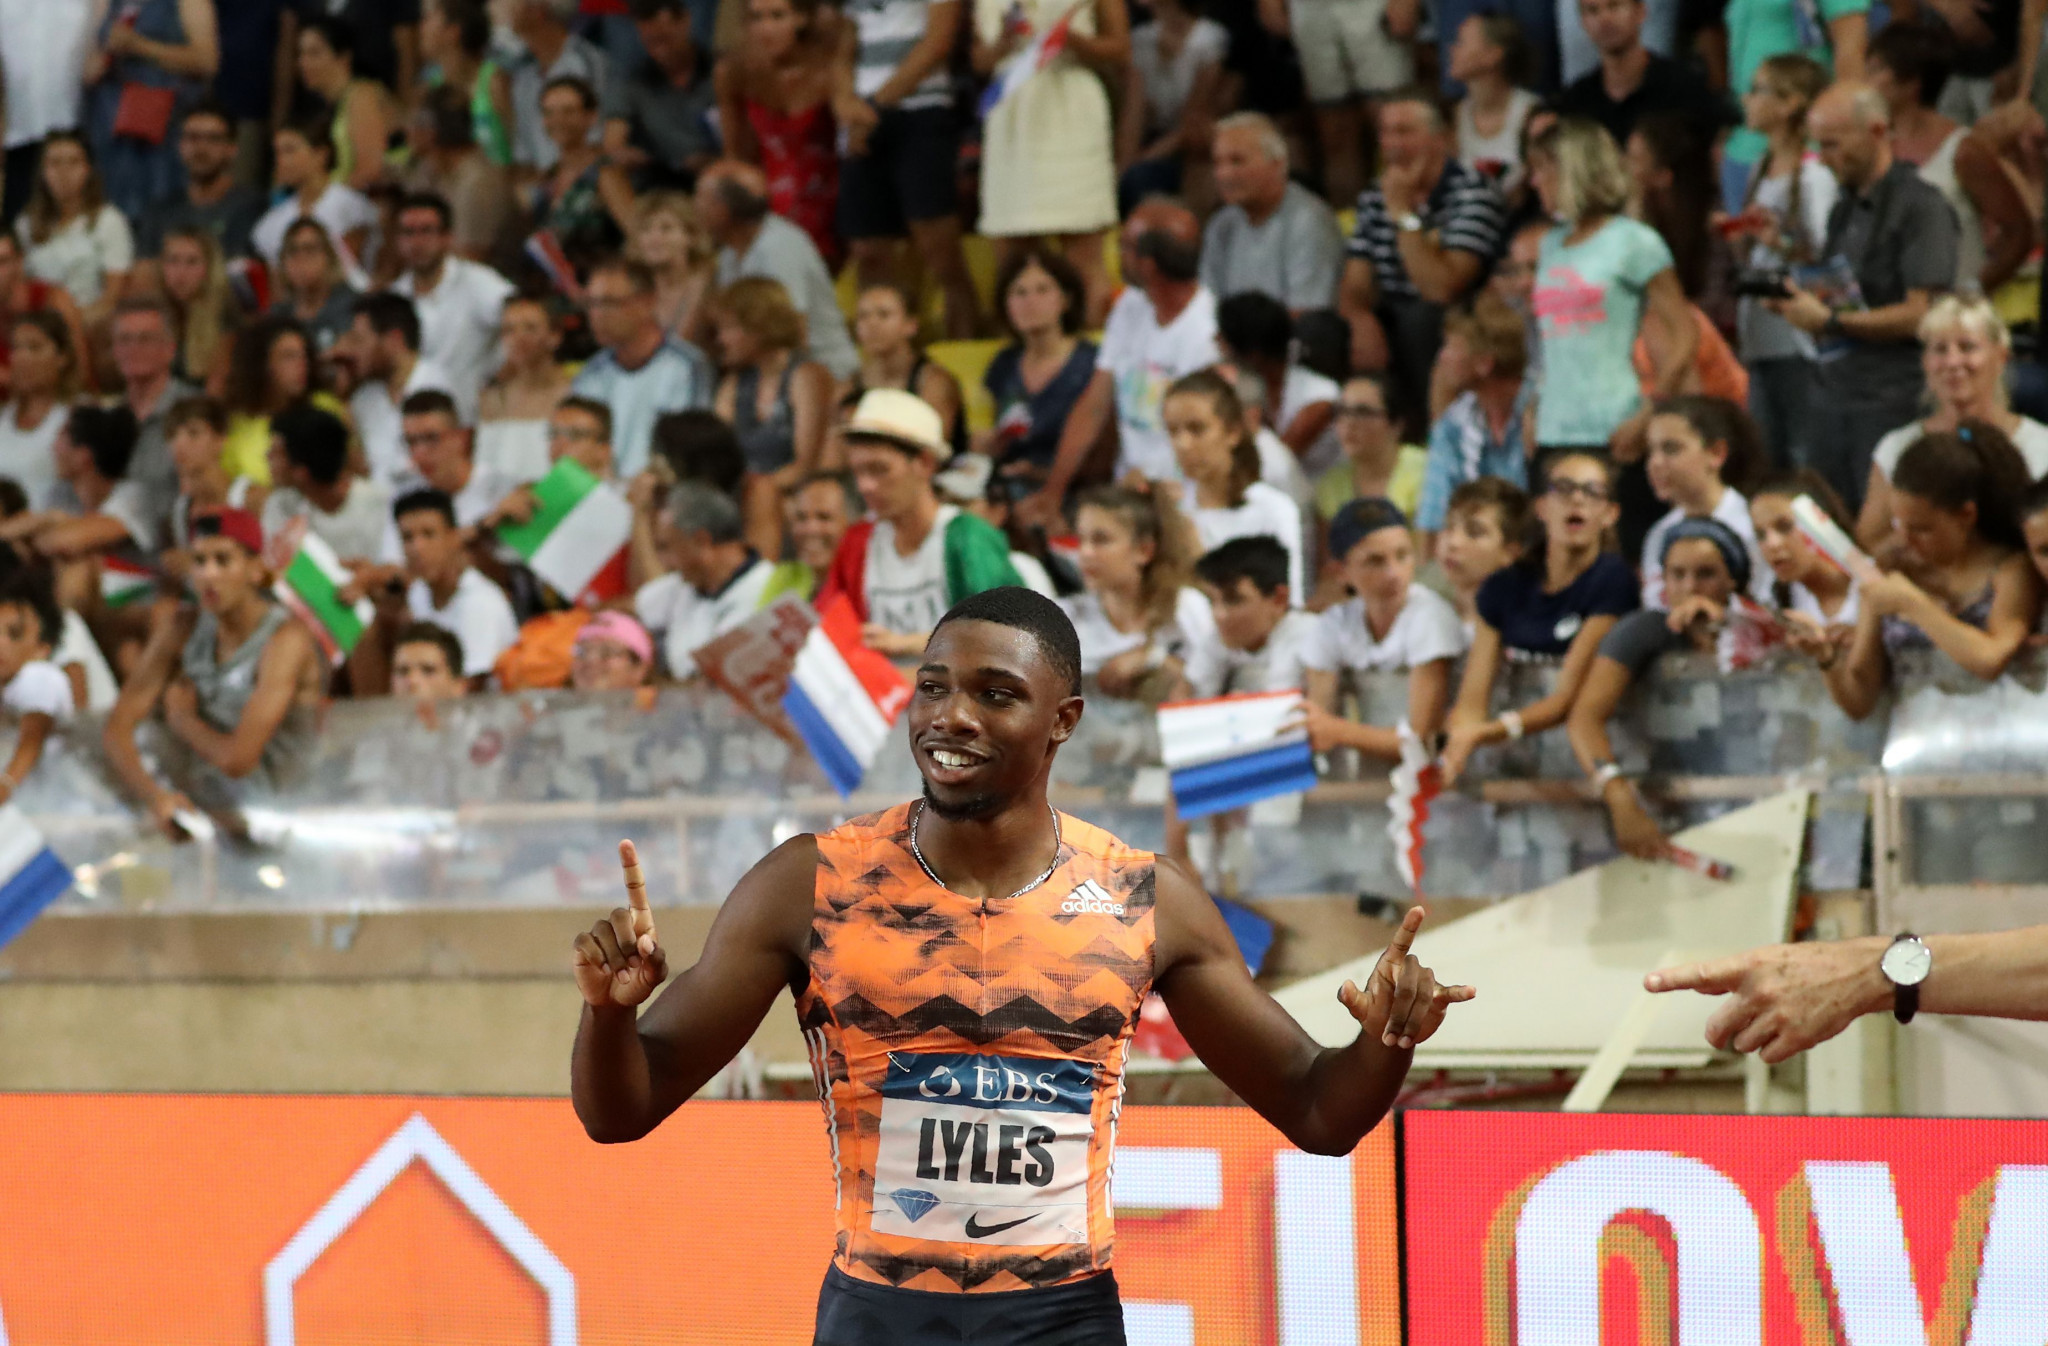 Noah Lyles, joint leader of this year's world 100m rankings with 9.88sec, meets US compatriot Christian Coleman in an eagerly-anticipated race ©Getty Images